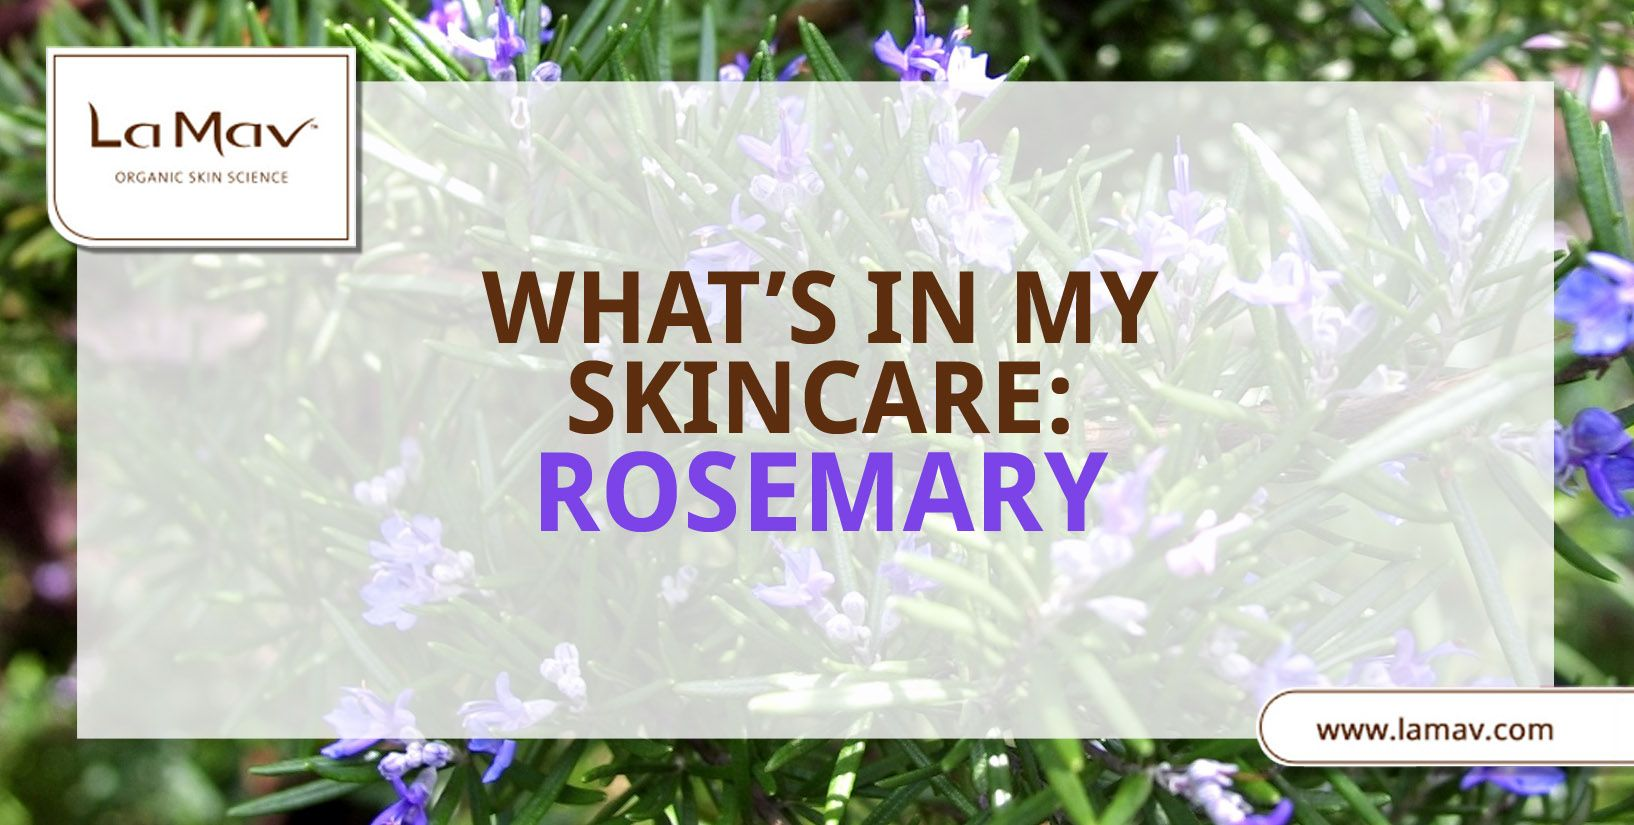 Rosemary is not just an aromatic plant that makes your dishes incredibly delicious. It's a magical plant that can do wonders for your skin!